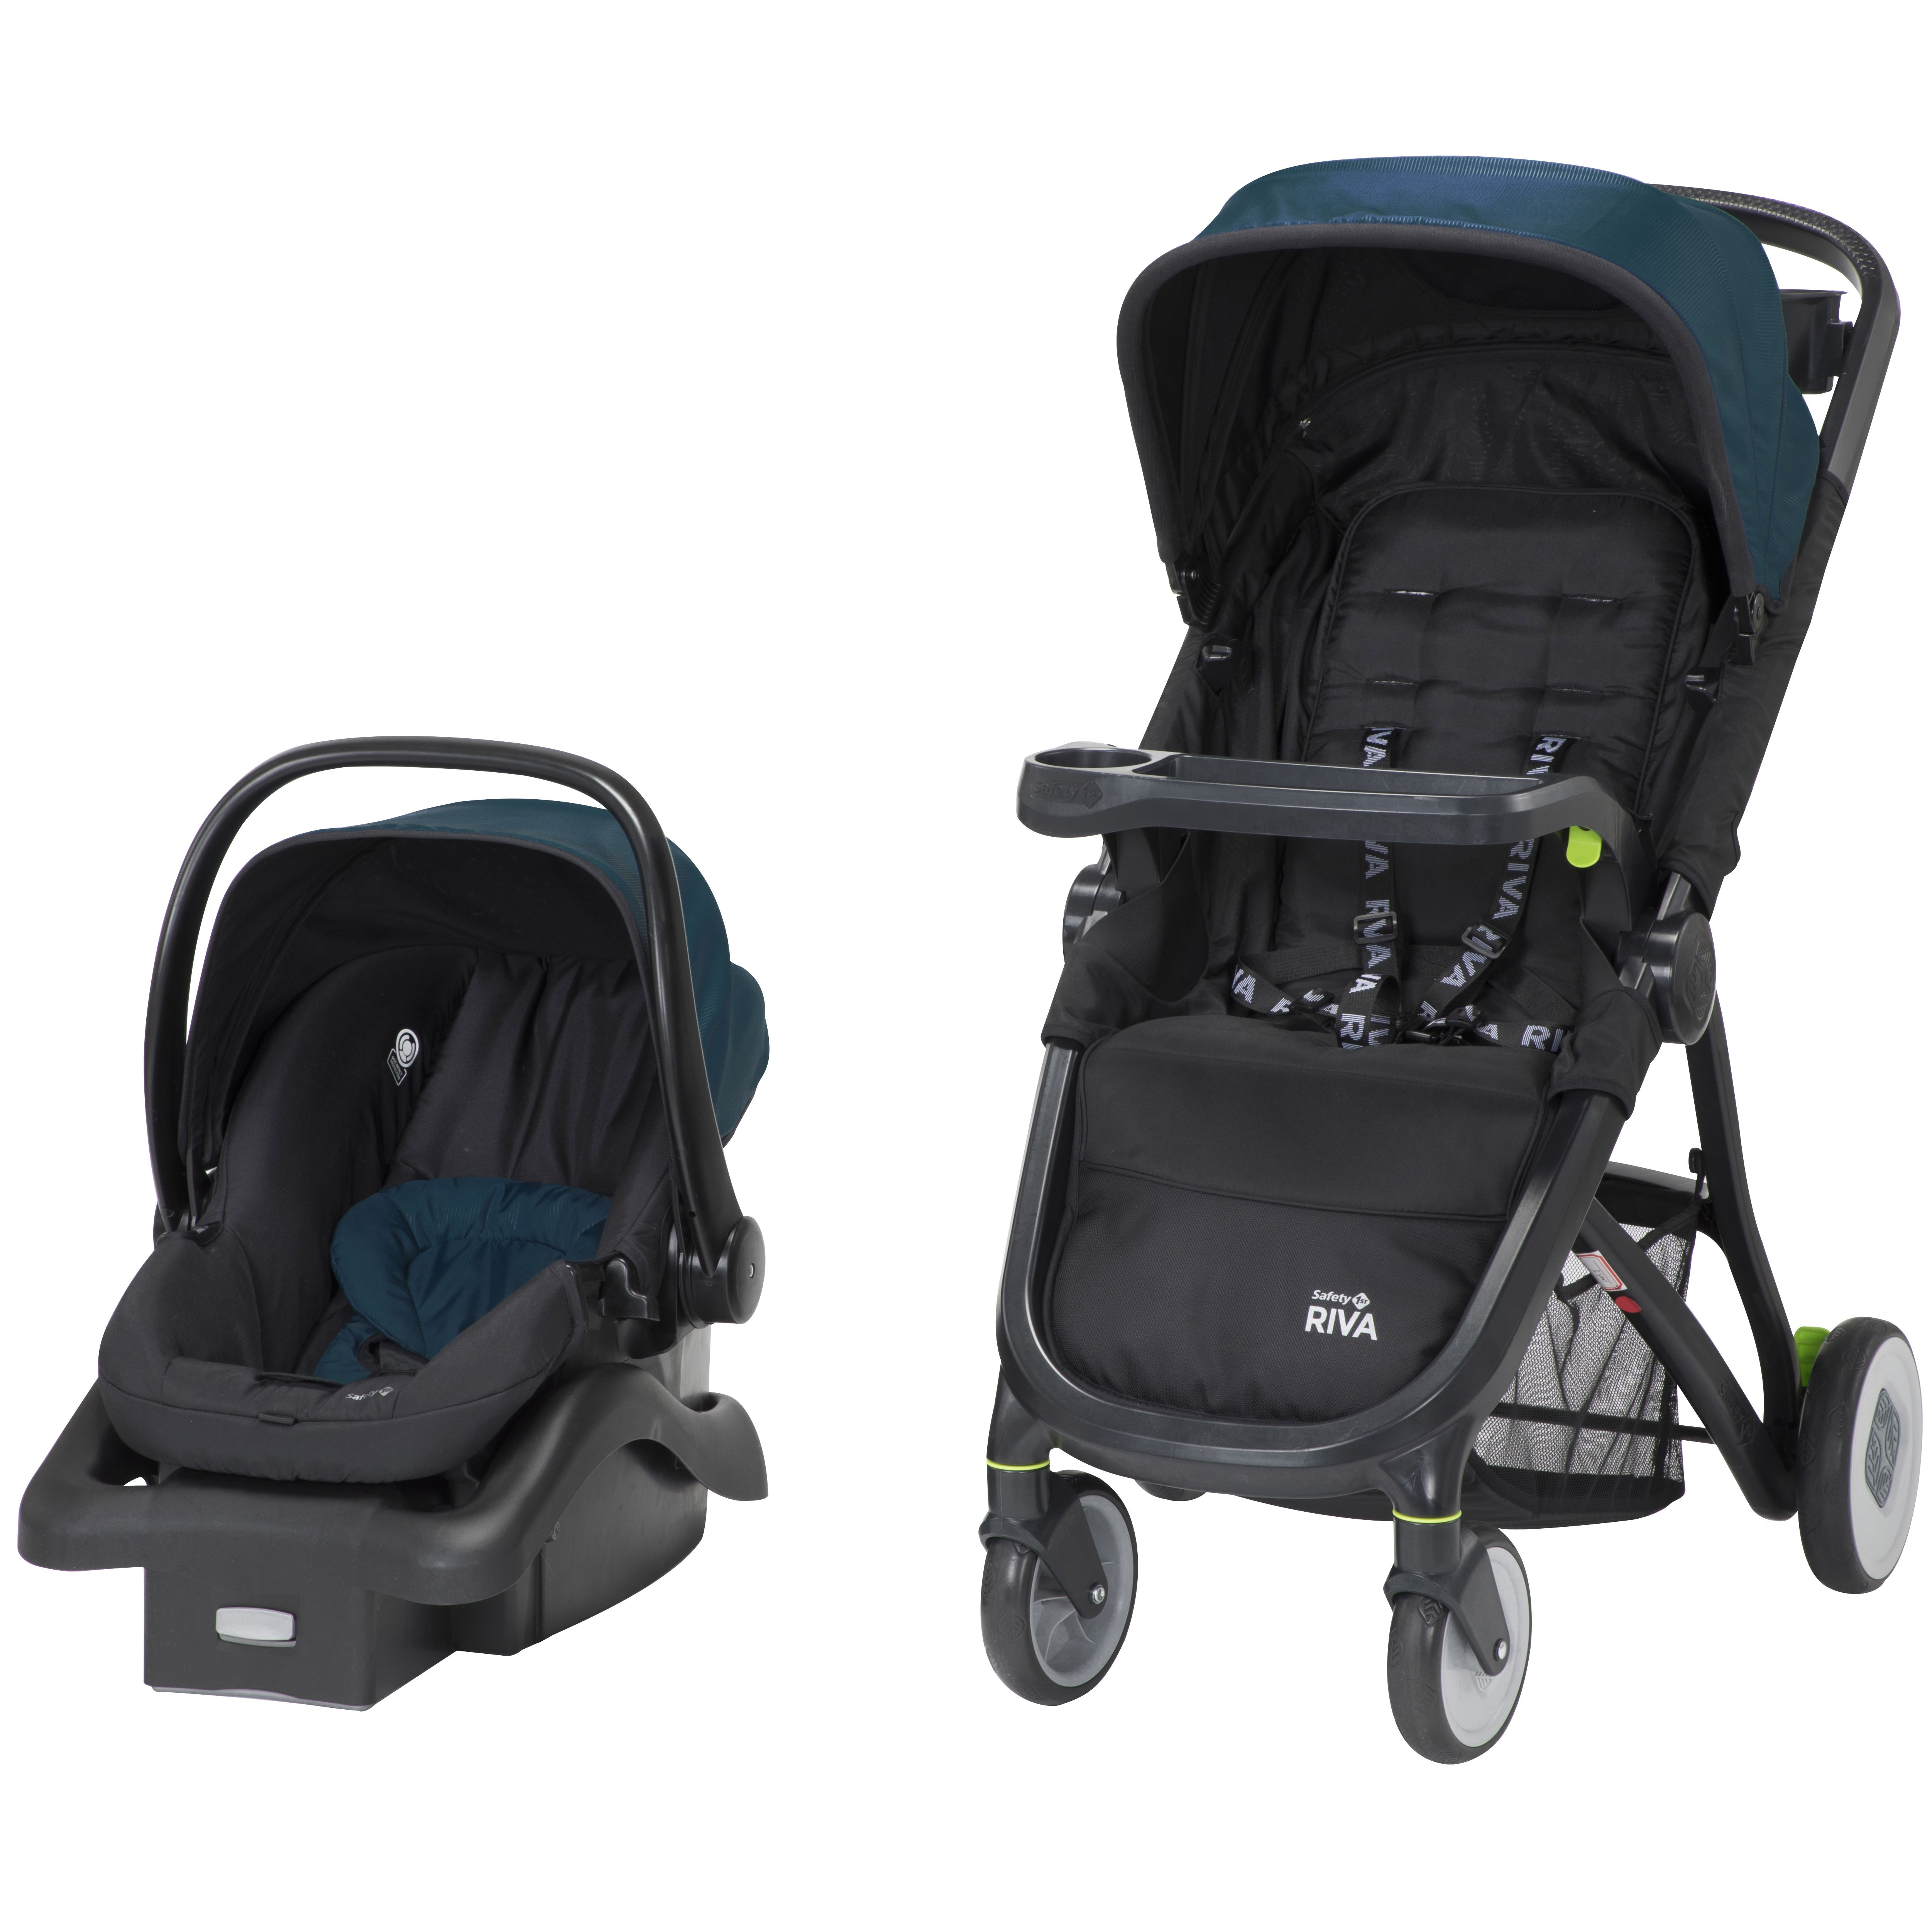 Baby Travel system stroller, Baby car seats, Travel system